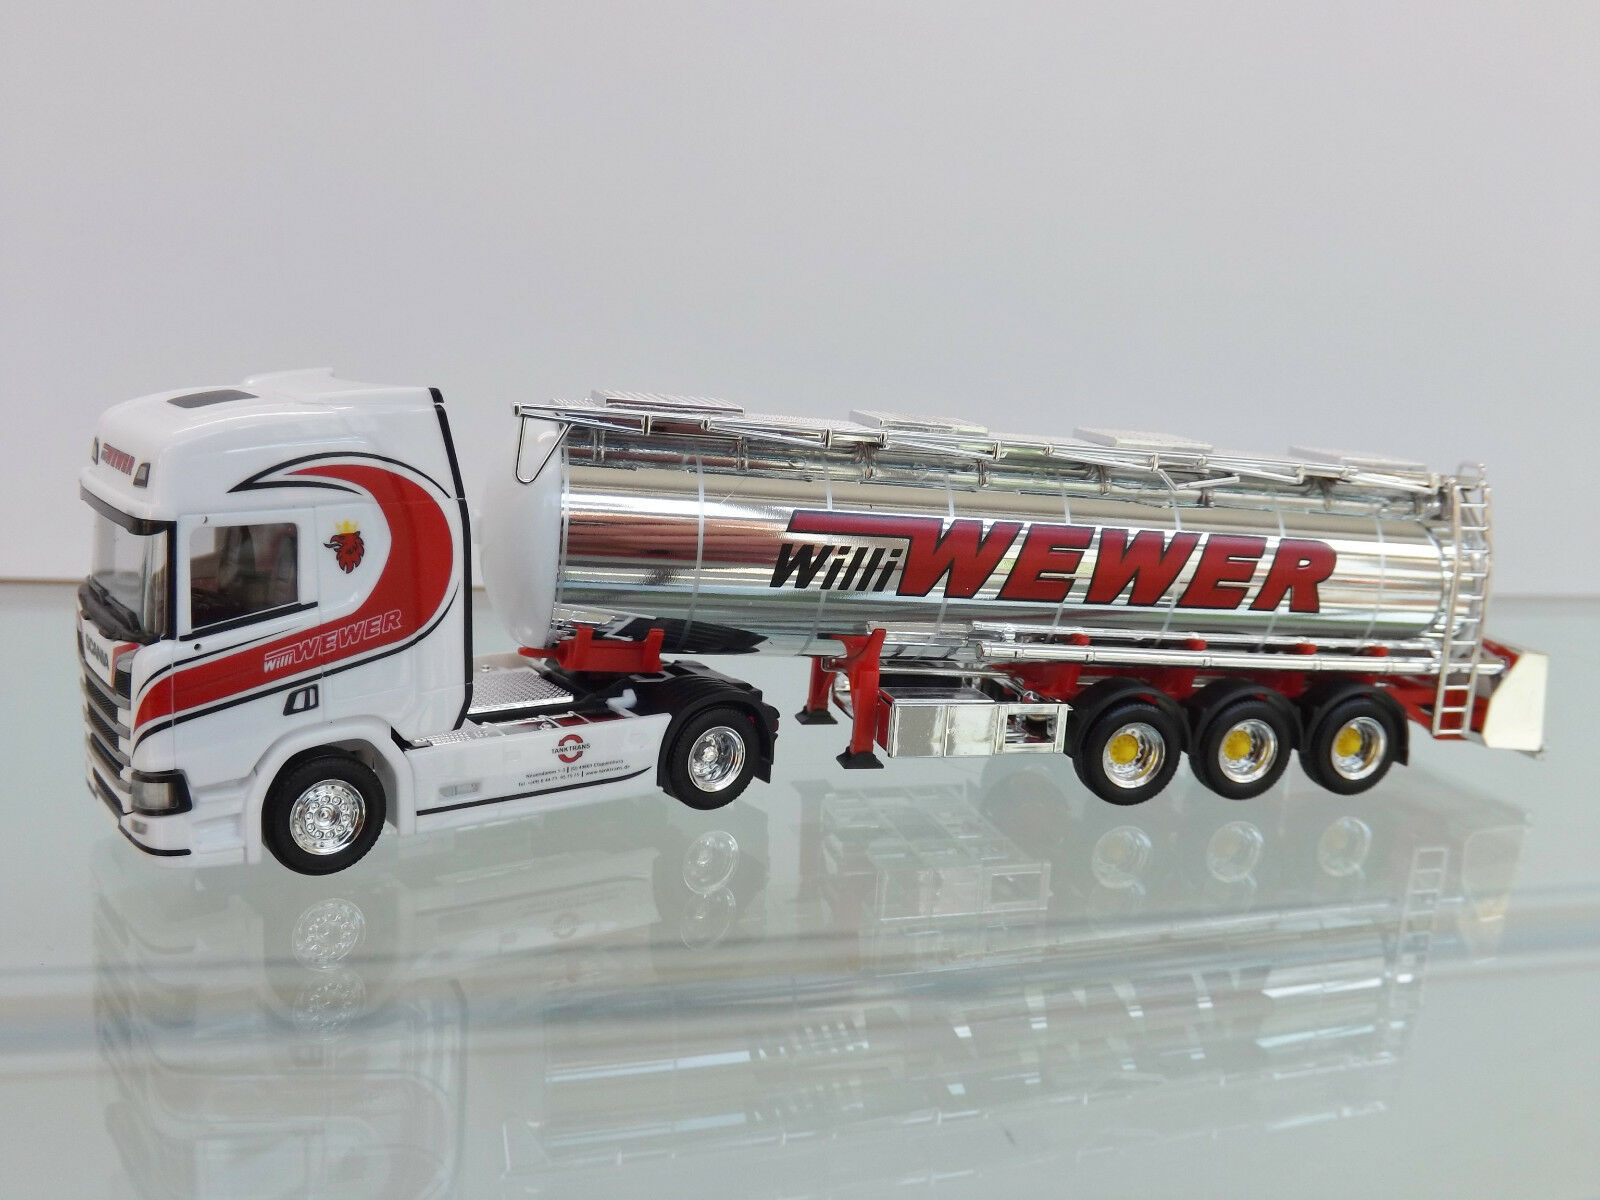 Herpa 308427 - H0 1 87 - Scania Cr HD Chromtank-Sz   Willi Wewer   - Nuovo in